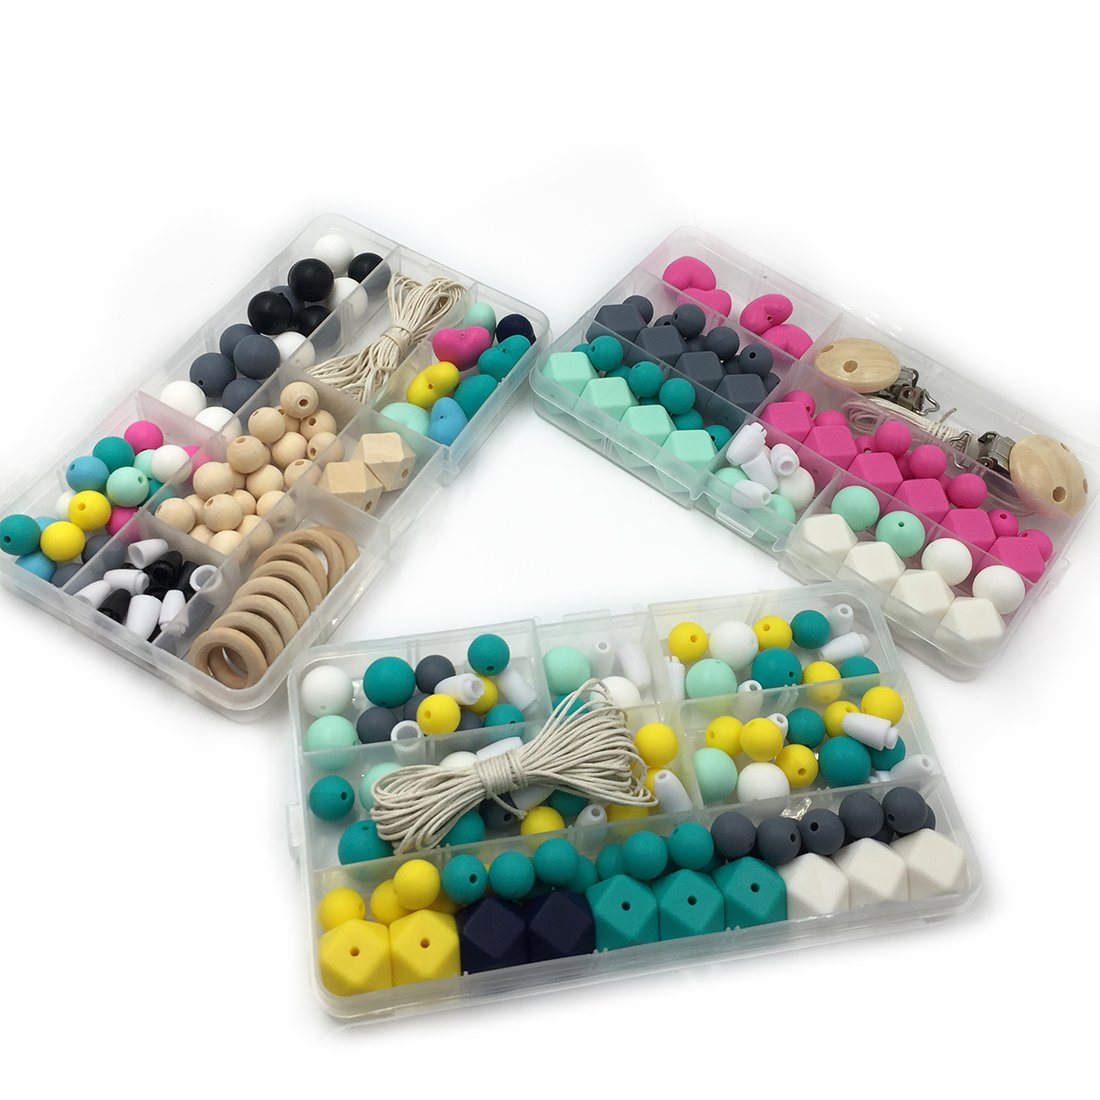 Amyster Diy Silicone Teething Kit Mixed Color Geometry Hexagon Silicone Beads Heart-Shaped Silicone Letters Beads Wooden Beads Pacifier Clip Baby Teether Toys Satz (A109+S407+S408)